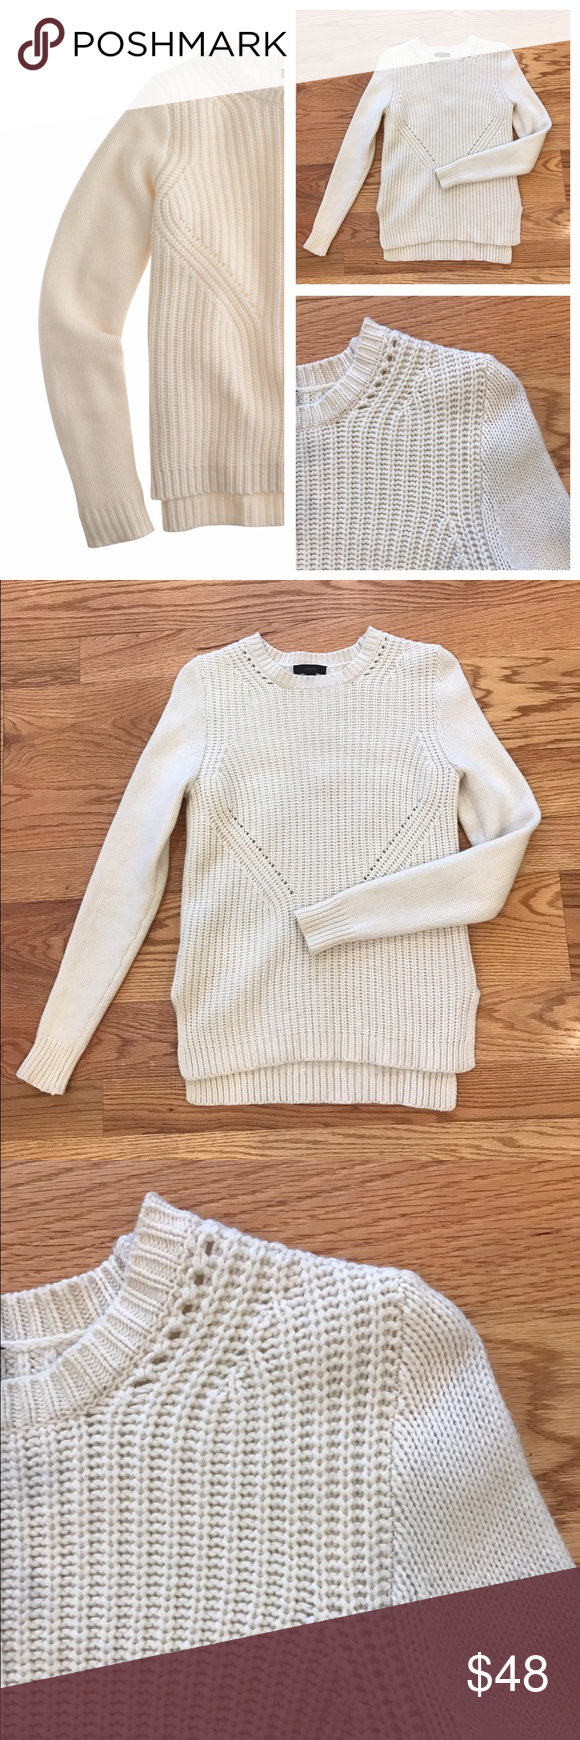 J. Crew Lambswool Pointelle Sweater Cream J. Crew Lambswool sweater in an intricate pointelle knit. Size small. In excellent condition. Feel free to ask any questions below or make me an offer! J. Crew Sweaters Crew & Scoop Necks